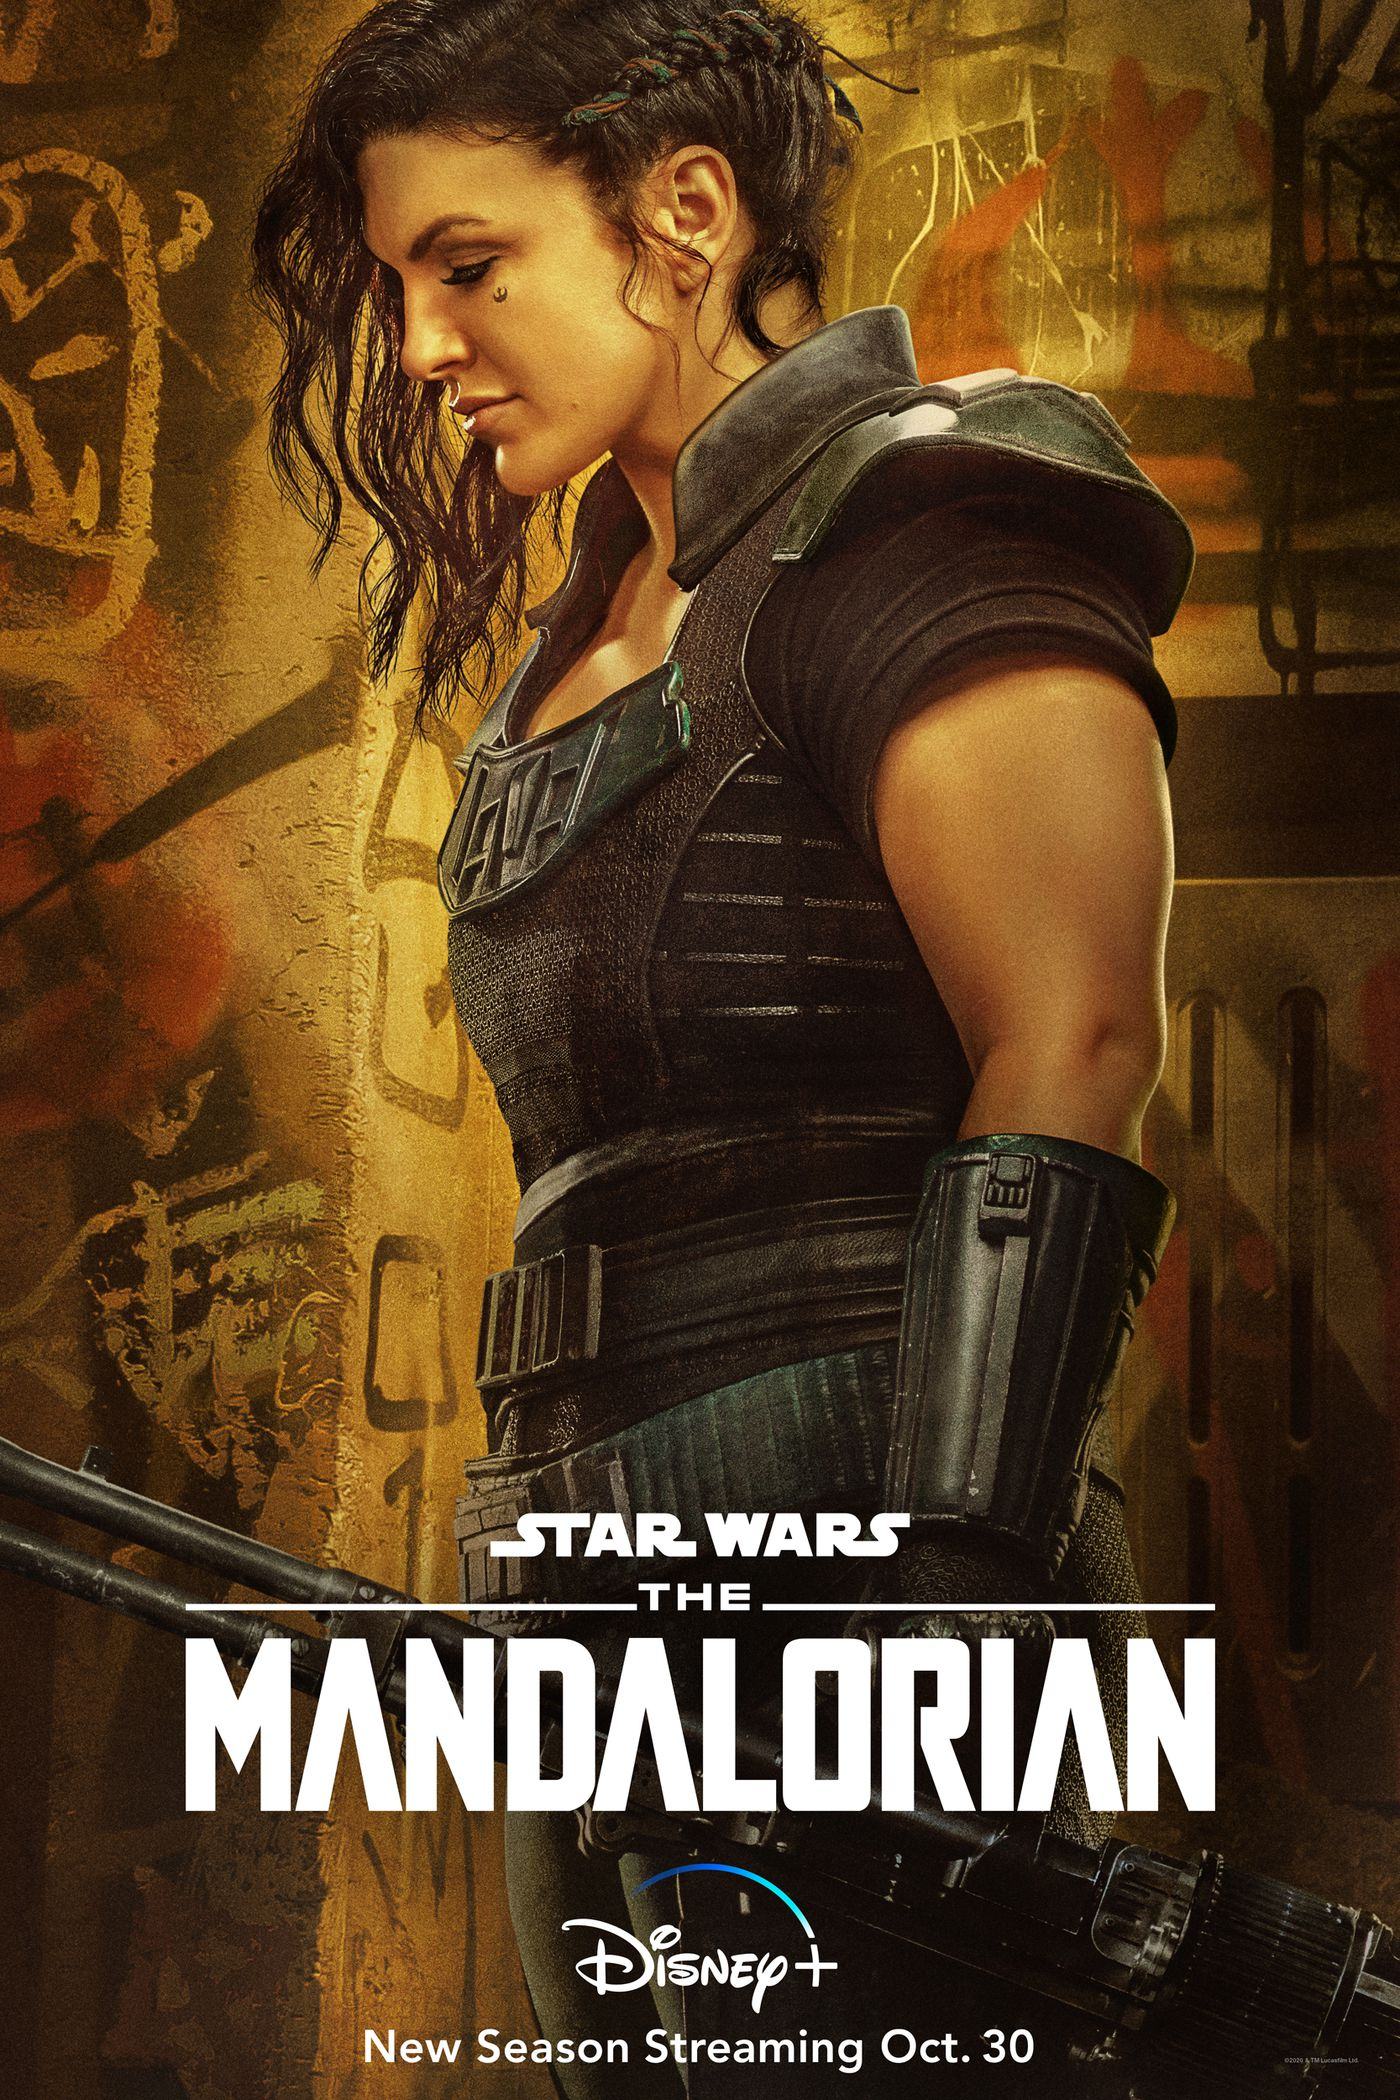 Star Wars The Mandalorian New Poster Art Leaks Online Deseret News